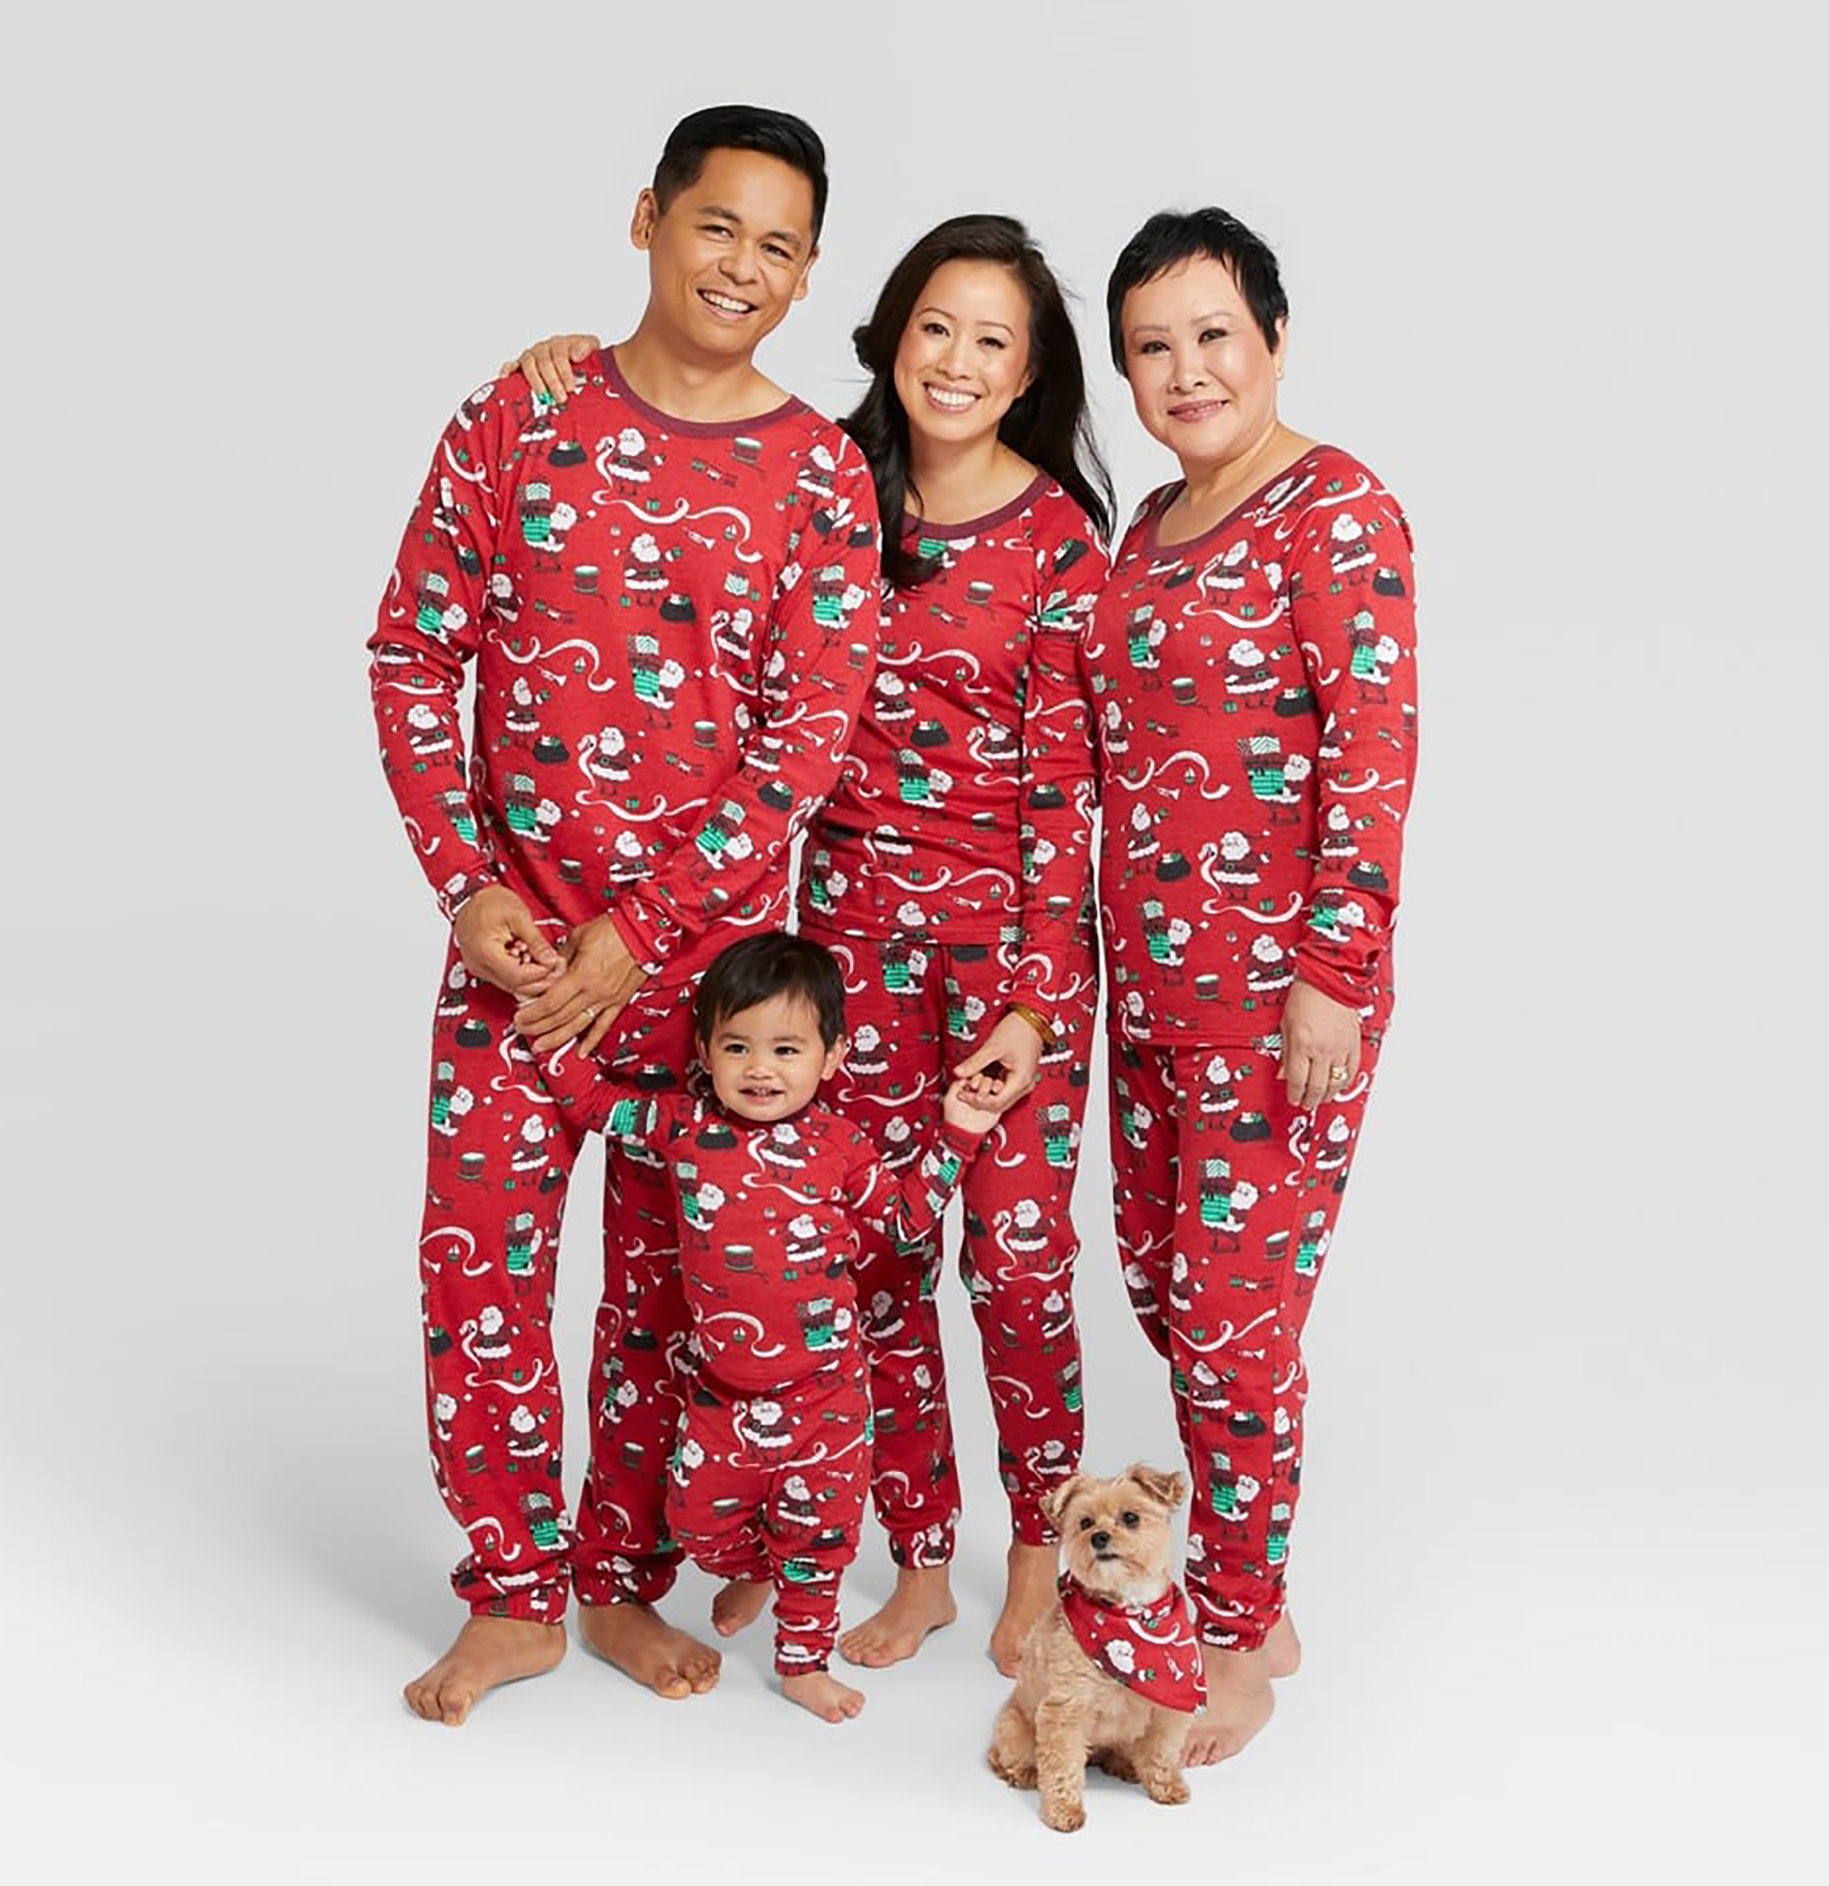 63a4bd65477 Nite Nite Munki Munki Holiday Santa s List Family Pajamas Collection